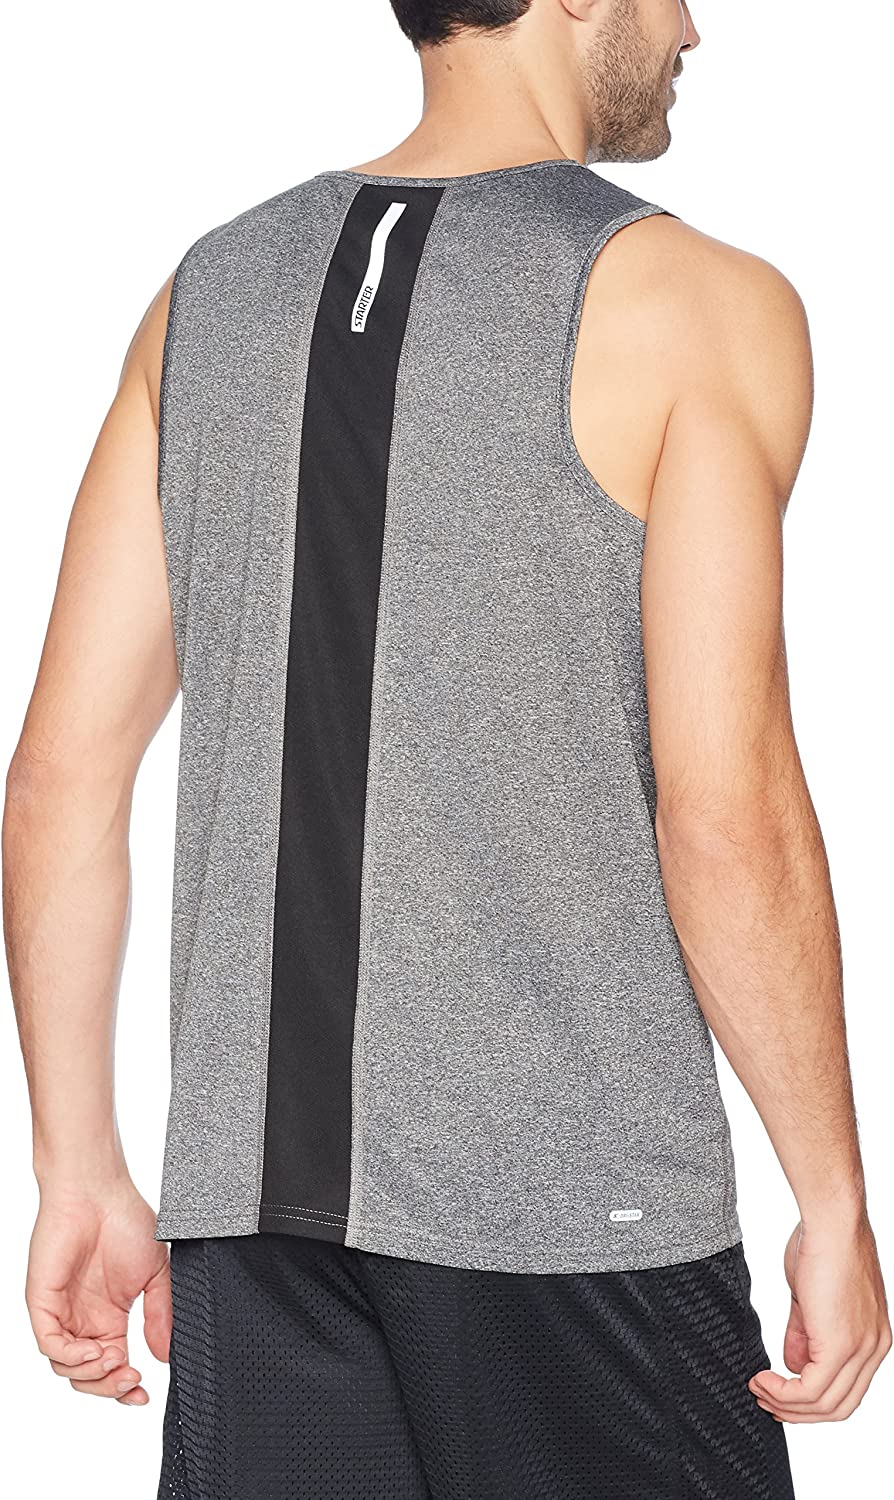 Starter Men's TRAINING-TECH Running Tank Top with Ventilation,  Exclusive: Clothing